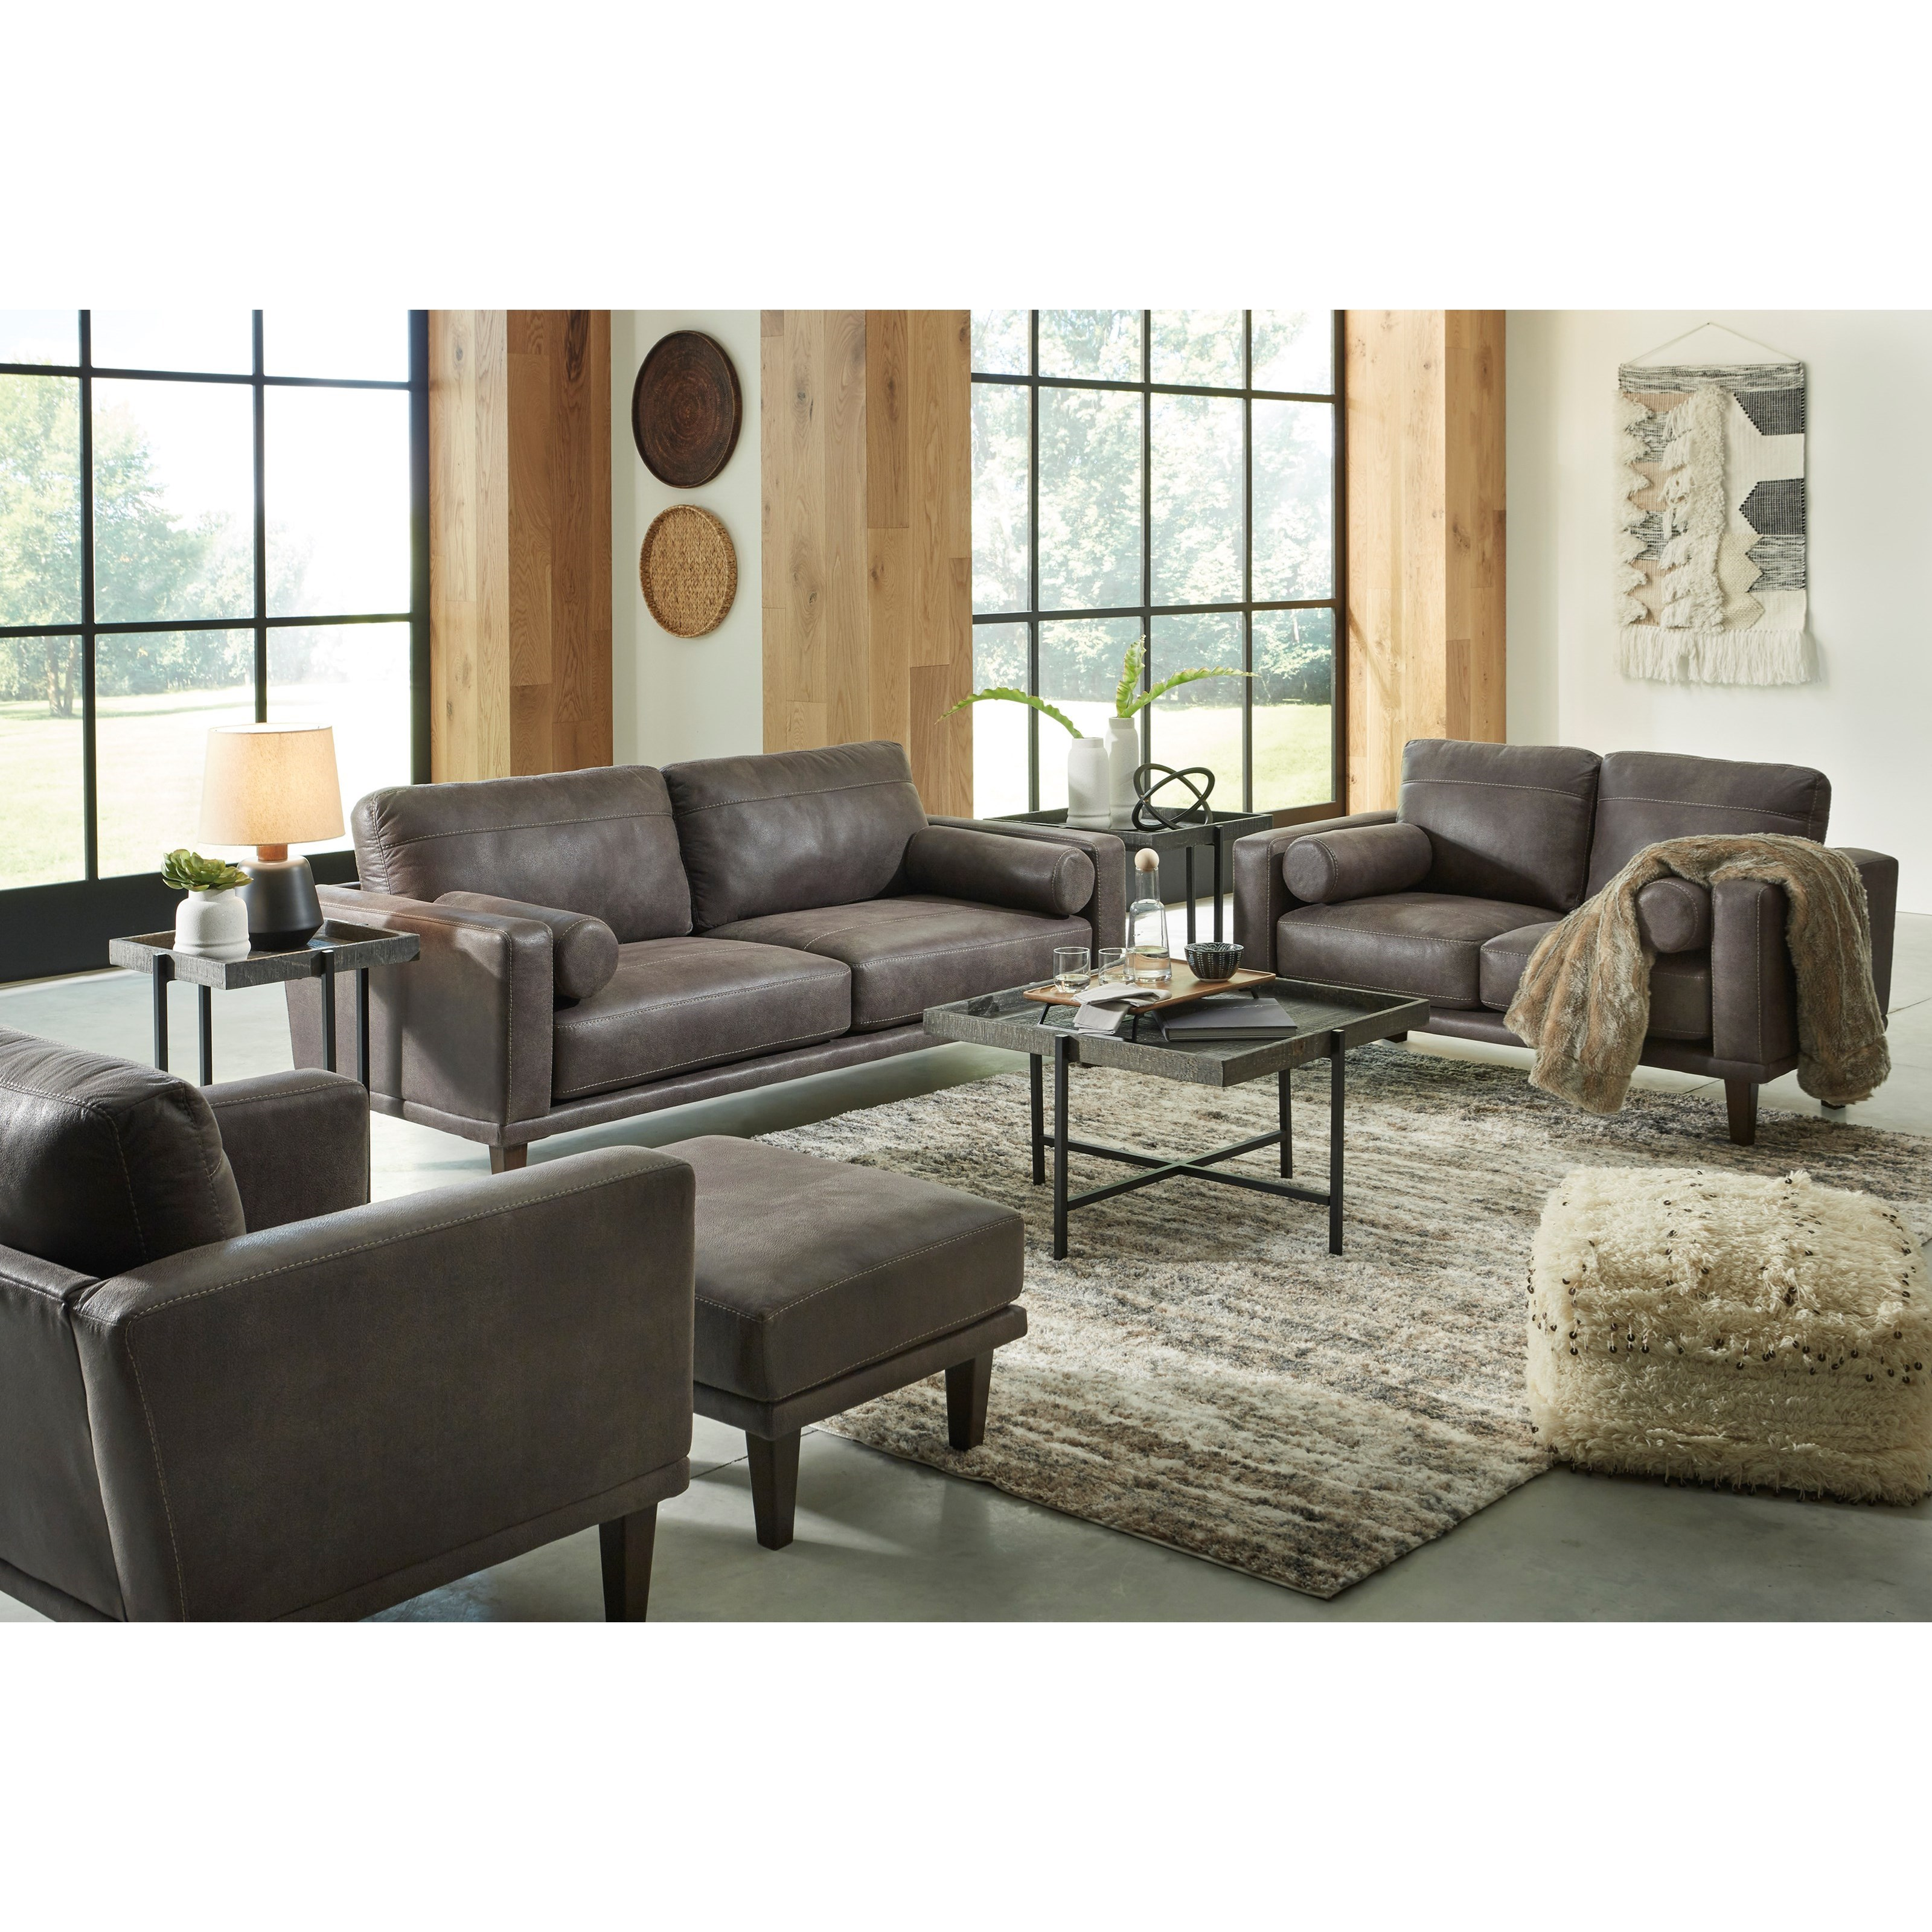 Arroyo Living Room Group by Signature Design by Ashley at Household Furniture